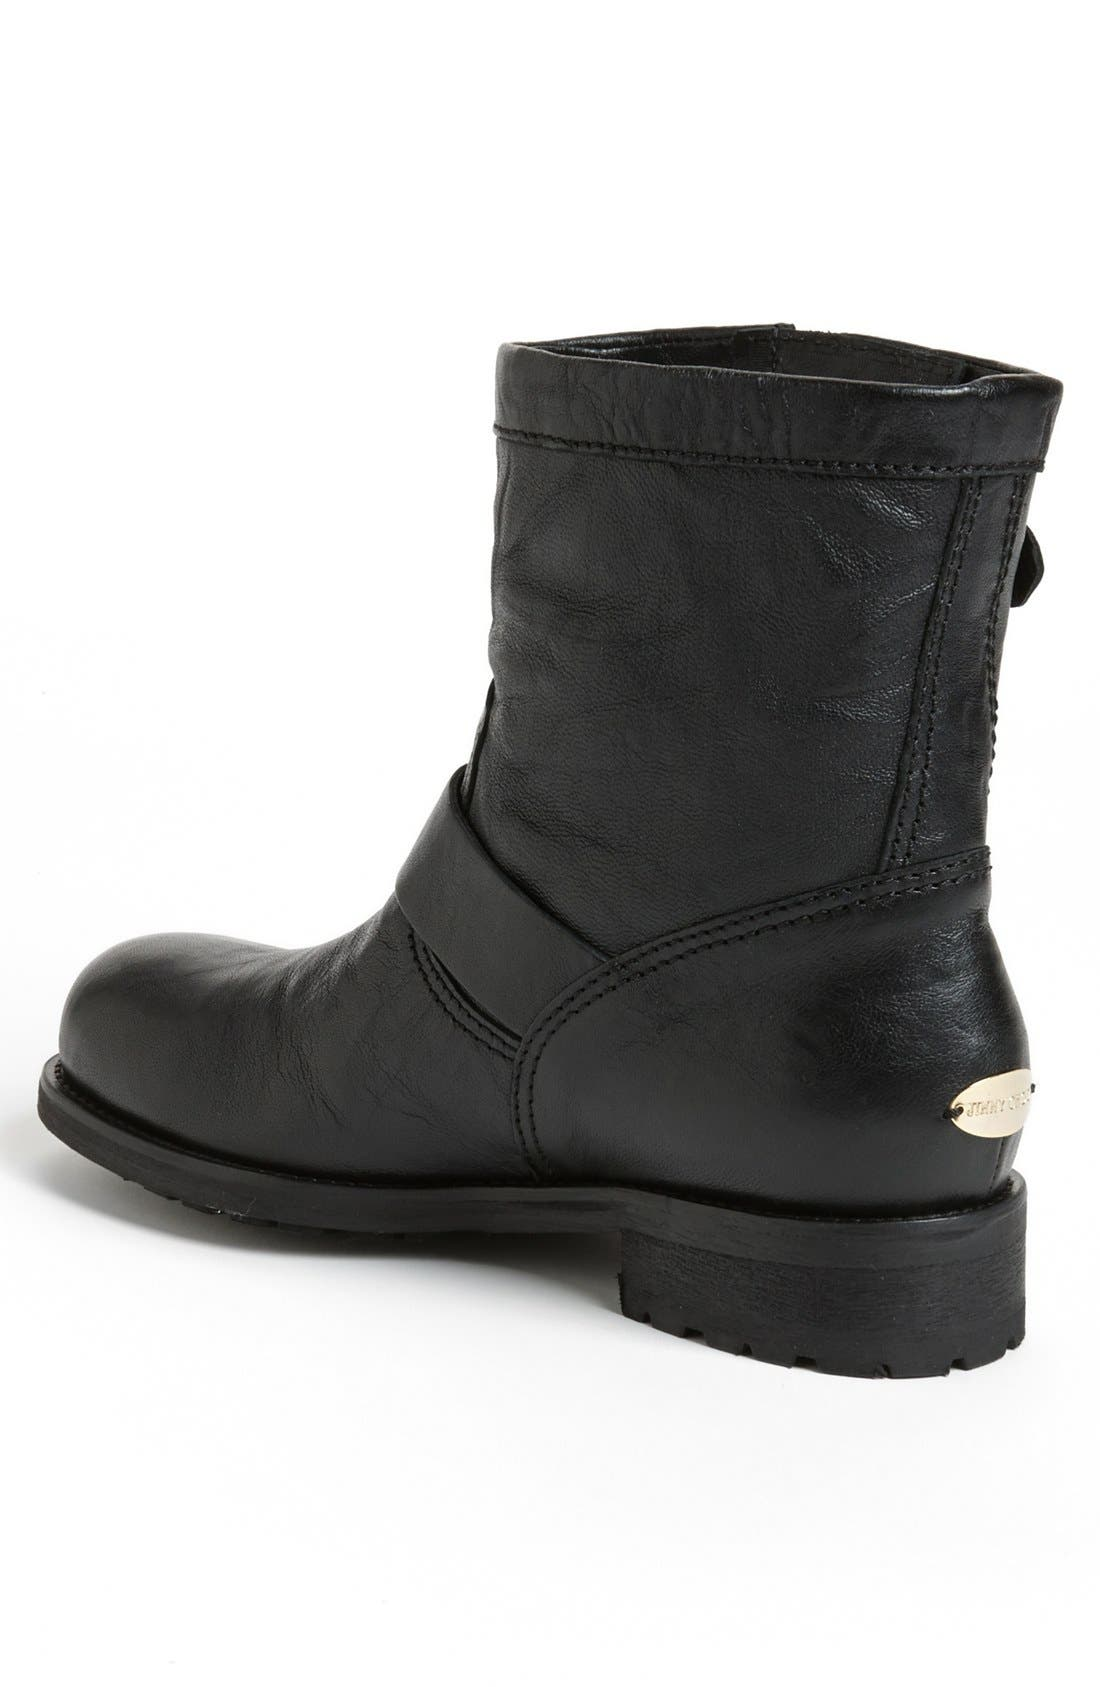 Alternate Image 2  - Jimmy Choo 'Youth' Short Biker Boot